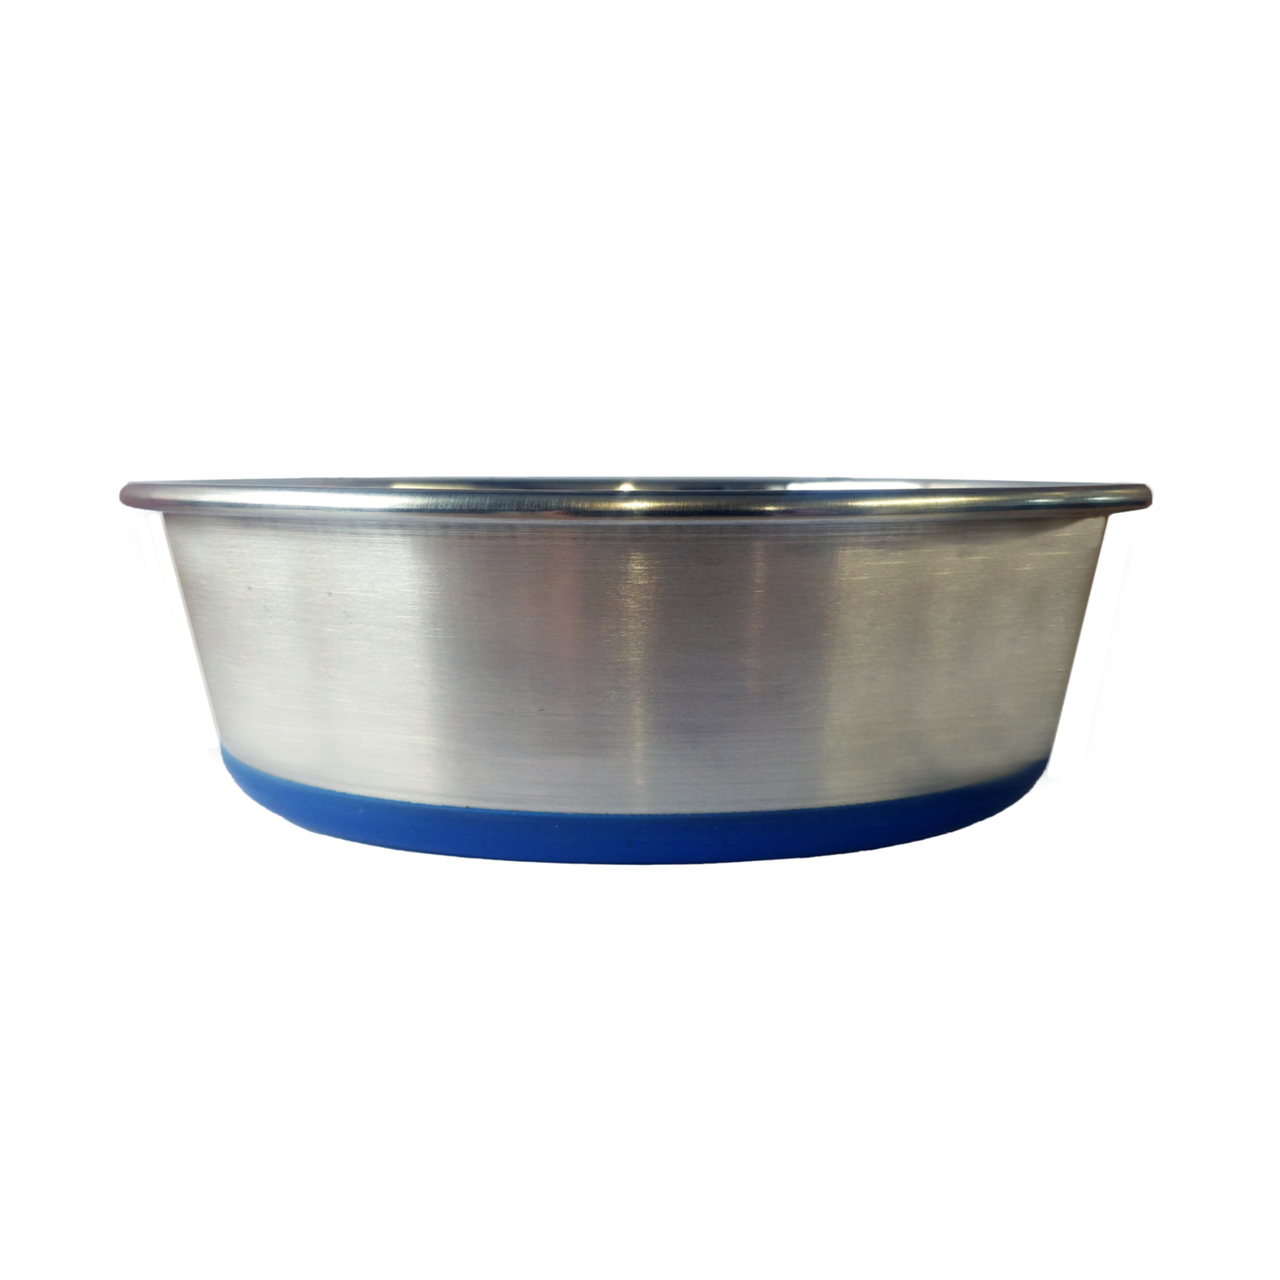 Durapet Durabolz Bowl 3800mL